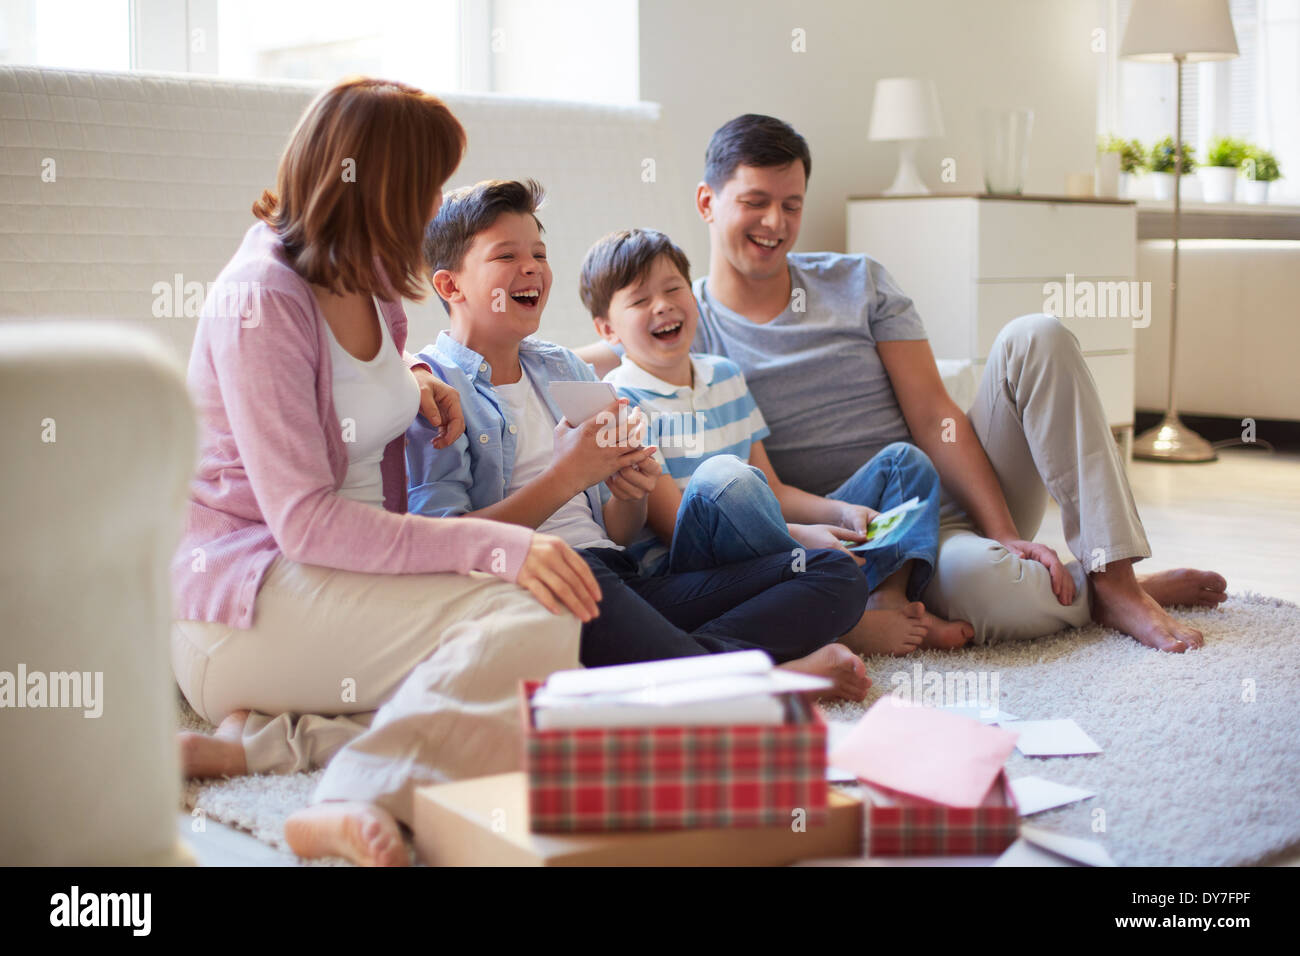 Portrait of friendly family spending time together at home - Stock Image